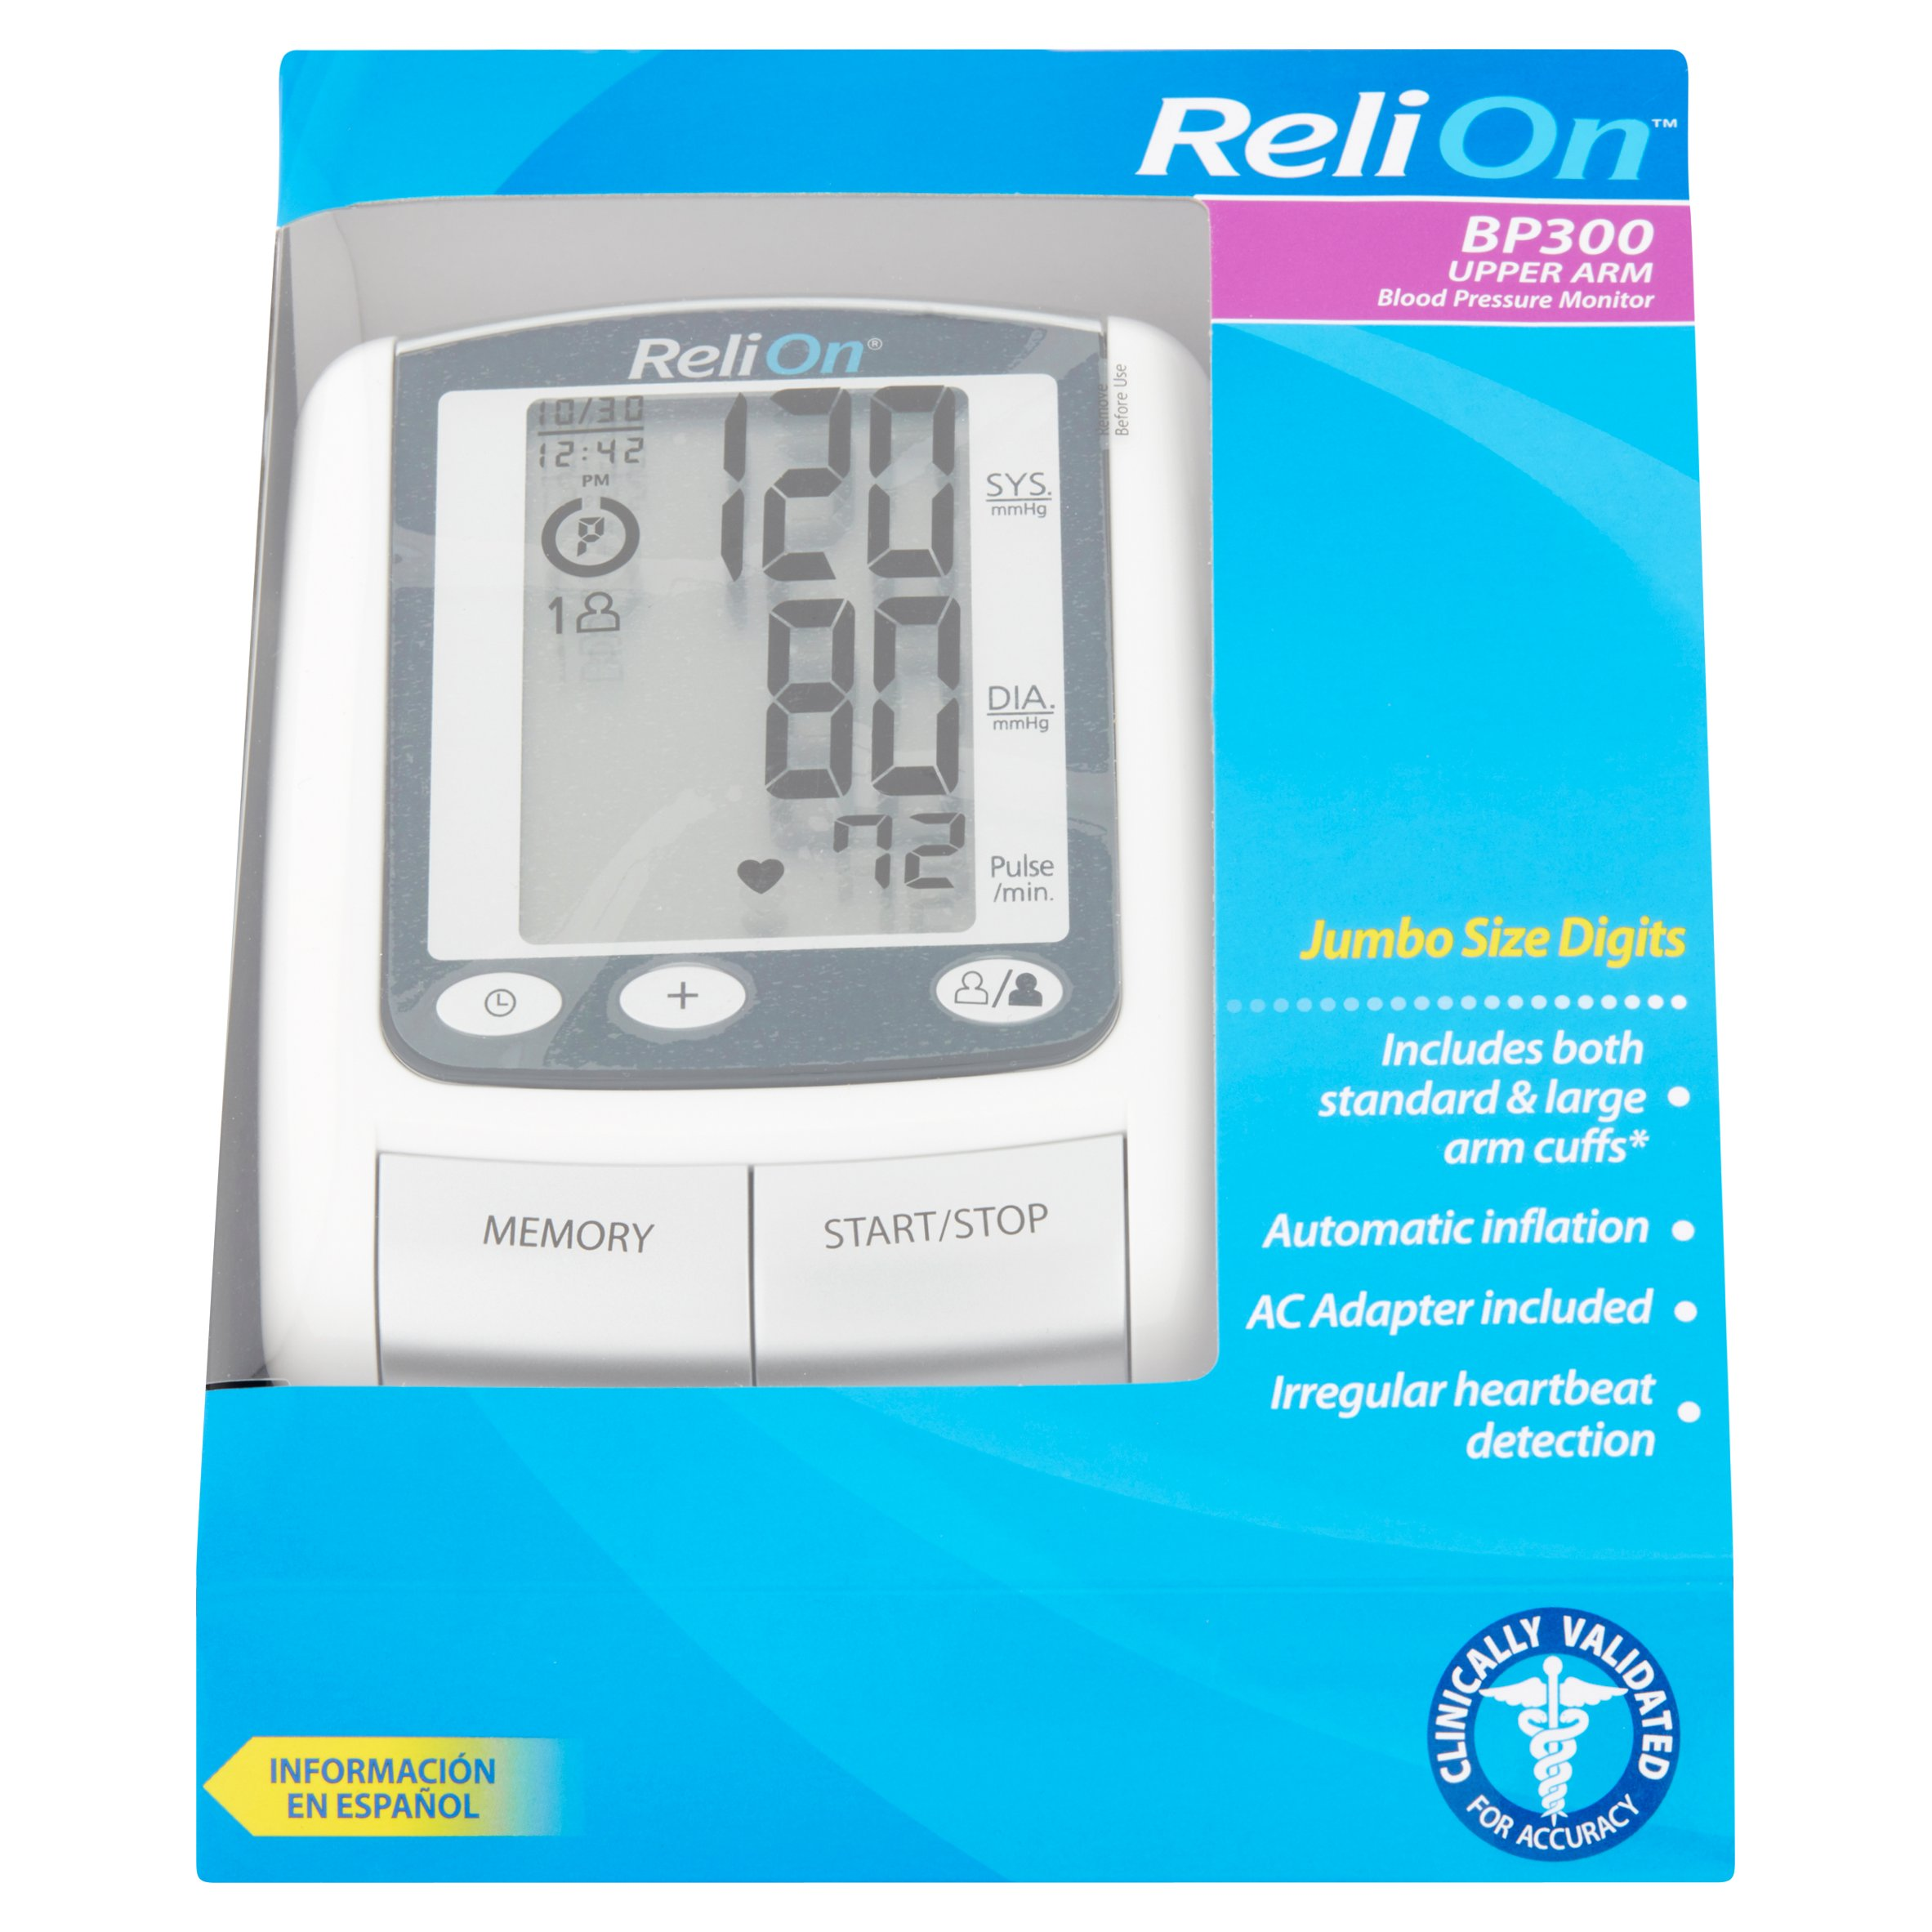 Reli on bp300 upper arm blood pressure monitor